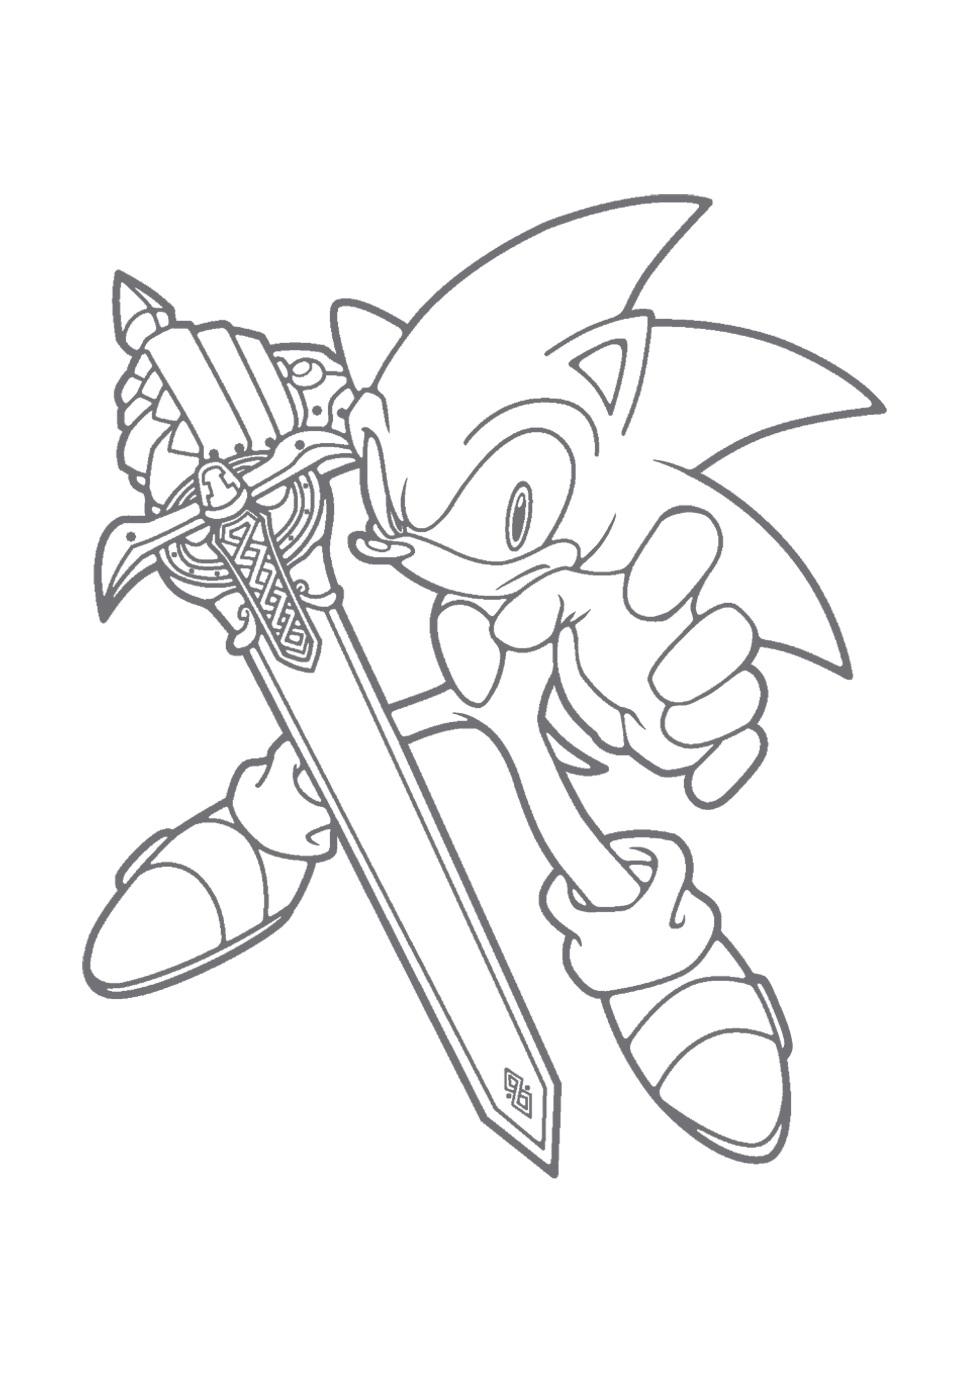 971x1377 Free Printable Sonic The Hedgehog Coloring Pages For Kids, Sonic